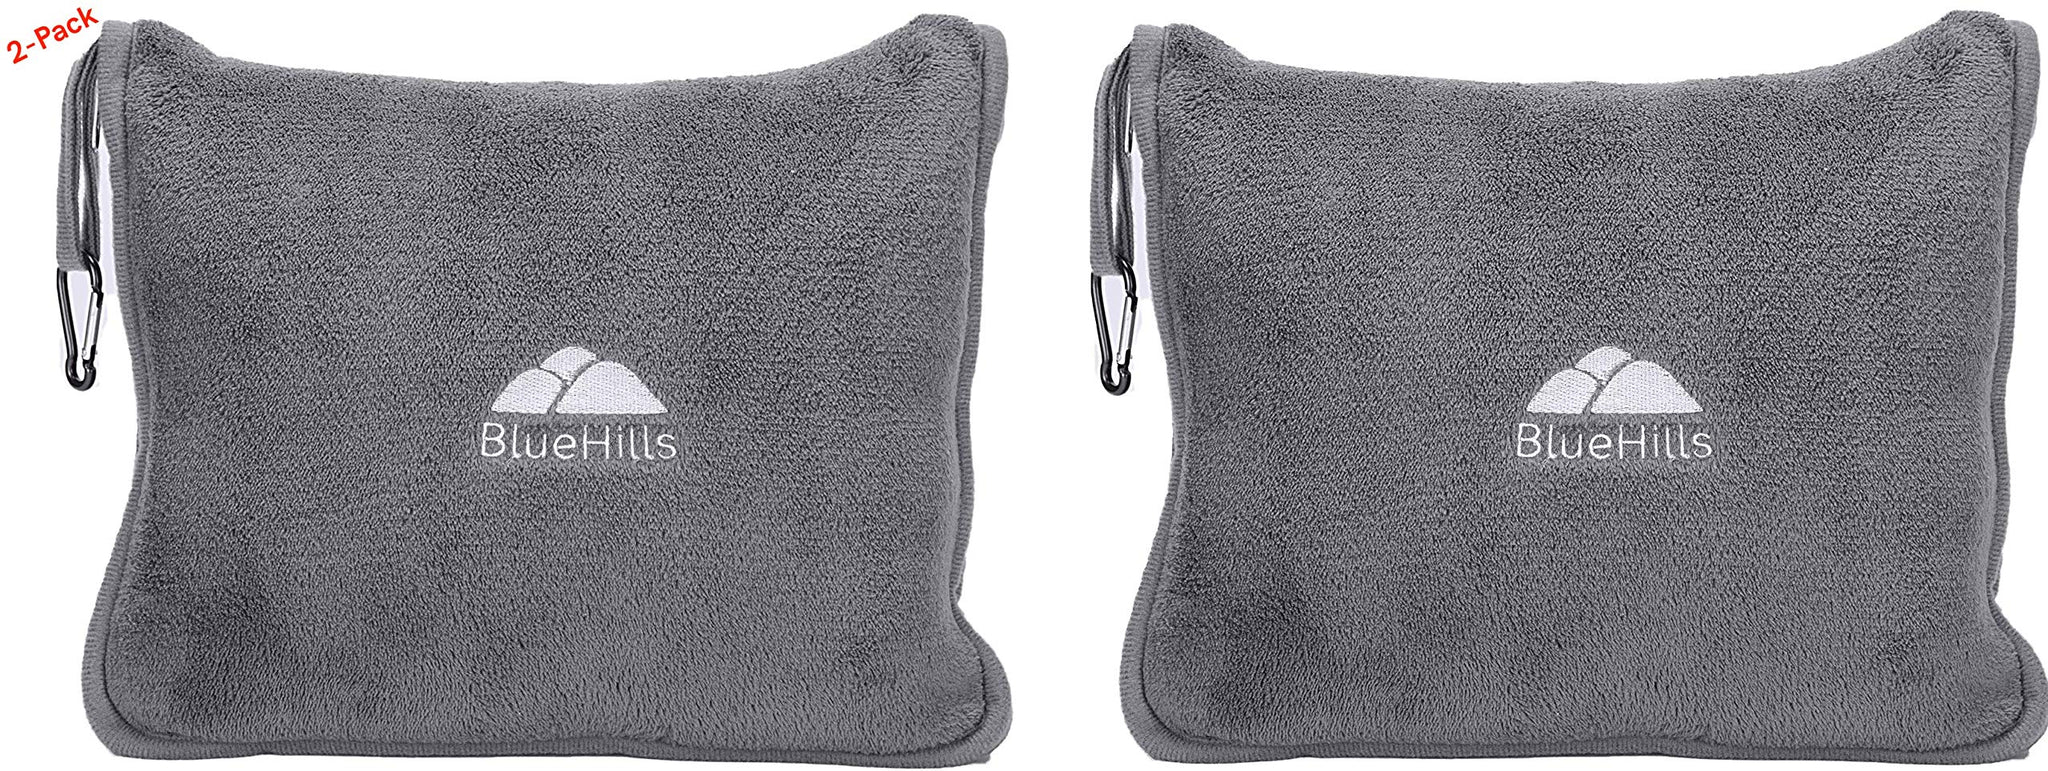 BlueHills 2-Pack Premium Soft Travel Blanket Pillow Airplane Blanket in Soft Bag Pillowcase with Hand Luggage Belt and Backpack Clip, Compact Pack Large Blanket for Any Travel (Grey Gray T013)